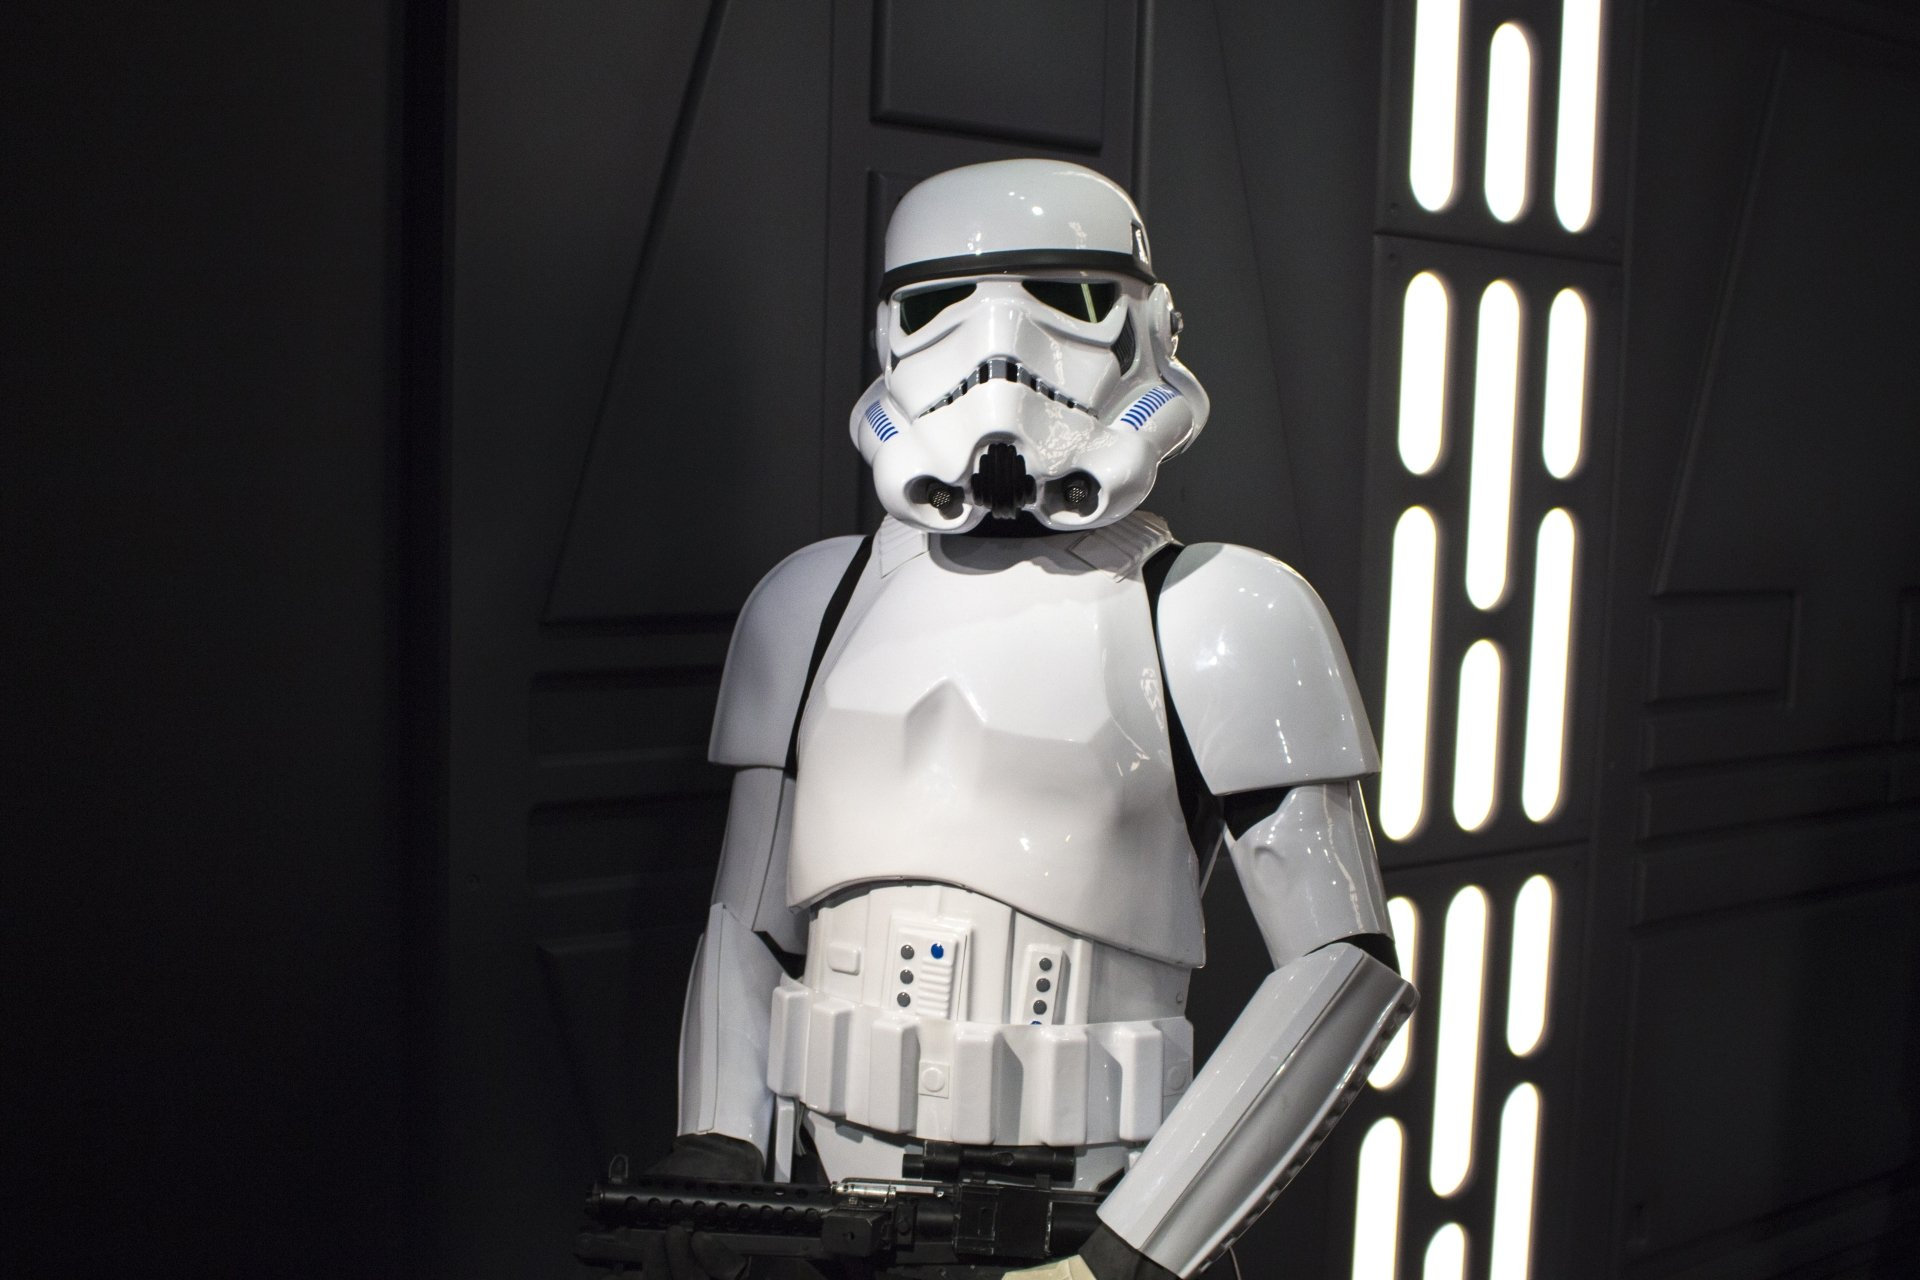 Sci Fi - Star Wars  Stormtrooper Sci Fi Statue Wallpaper